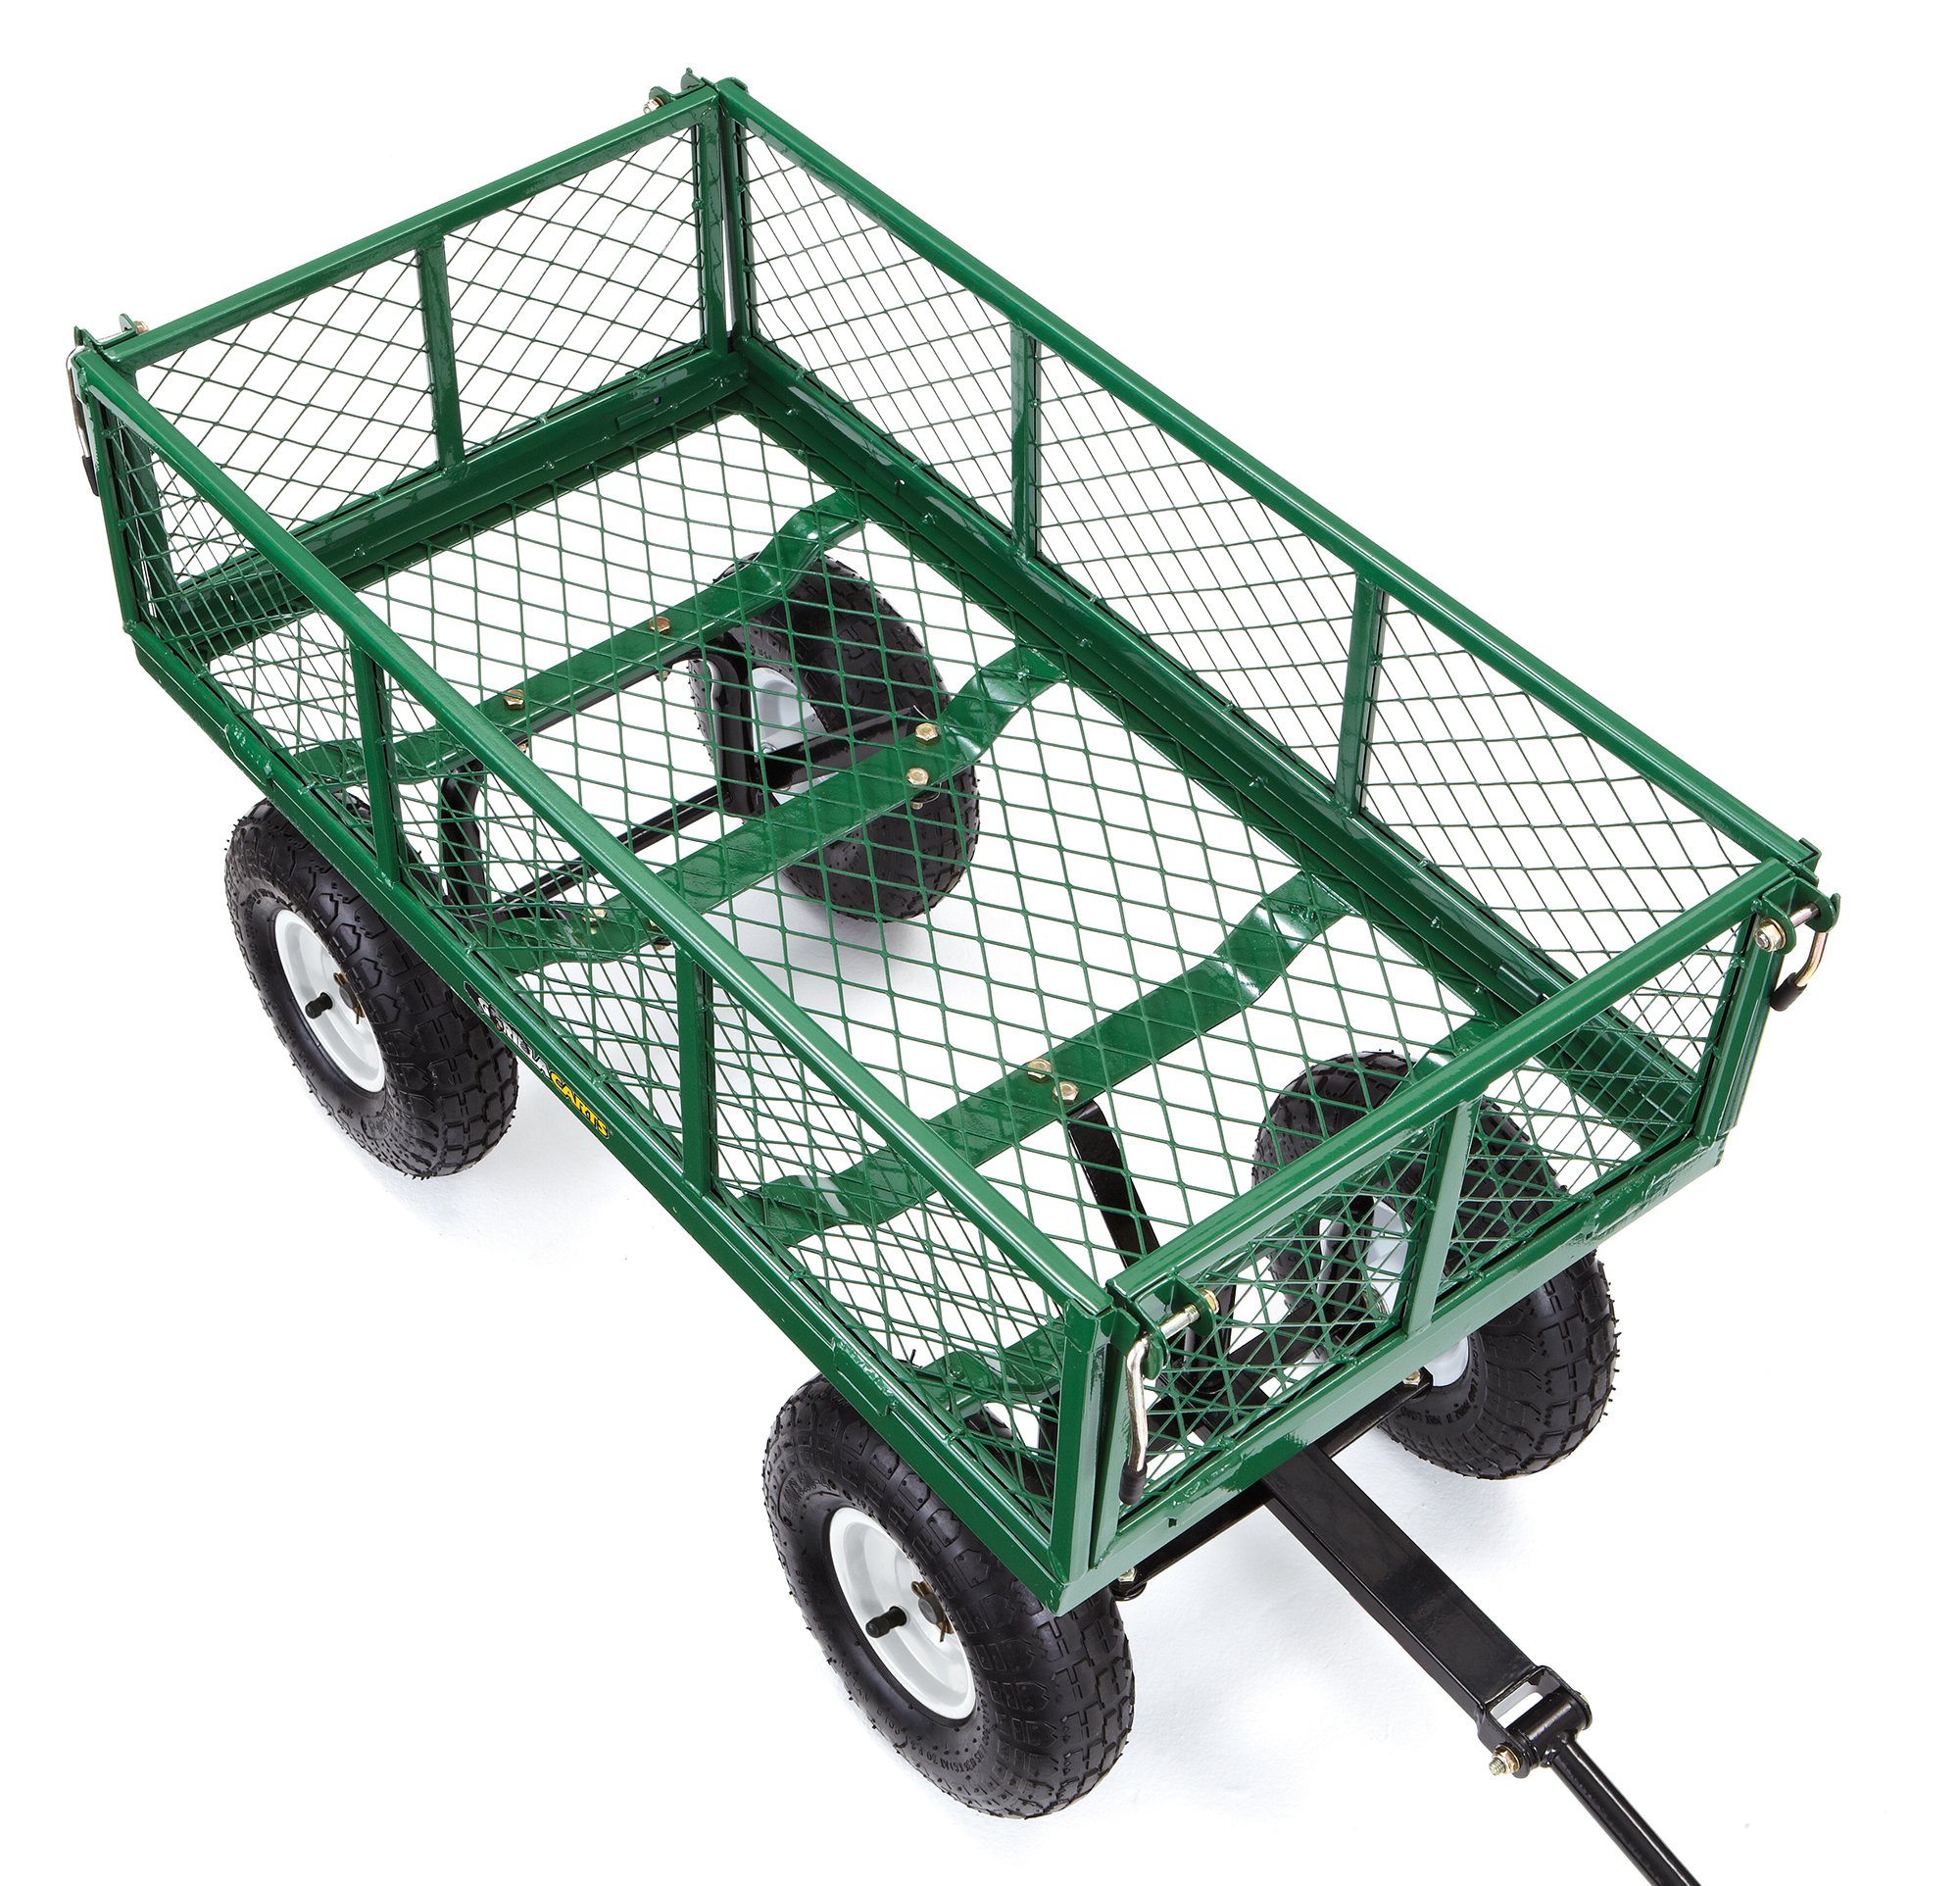 Green Capacity 400-lbs Pack of 2 Gorilla Carts GOR400-COM Steel Garden Cart with Removable Sides